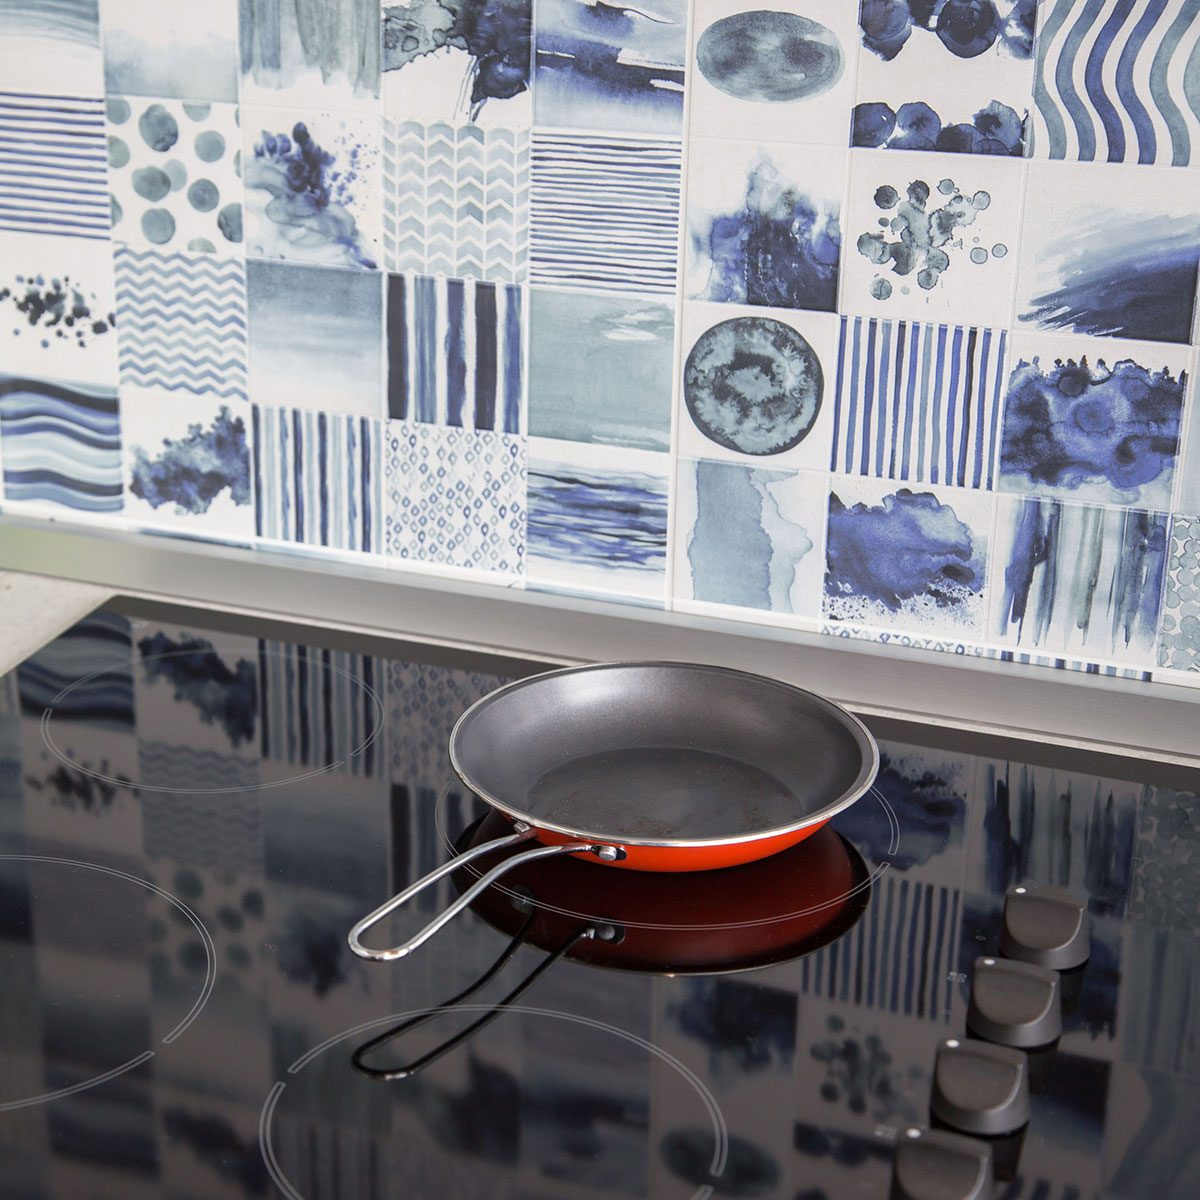 Electric stovetop with frying pan